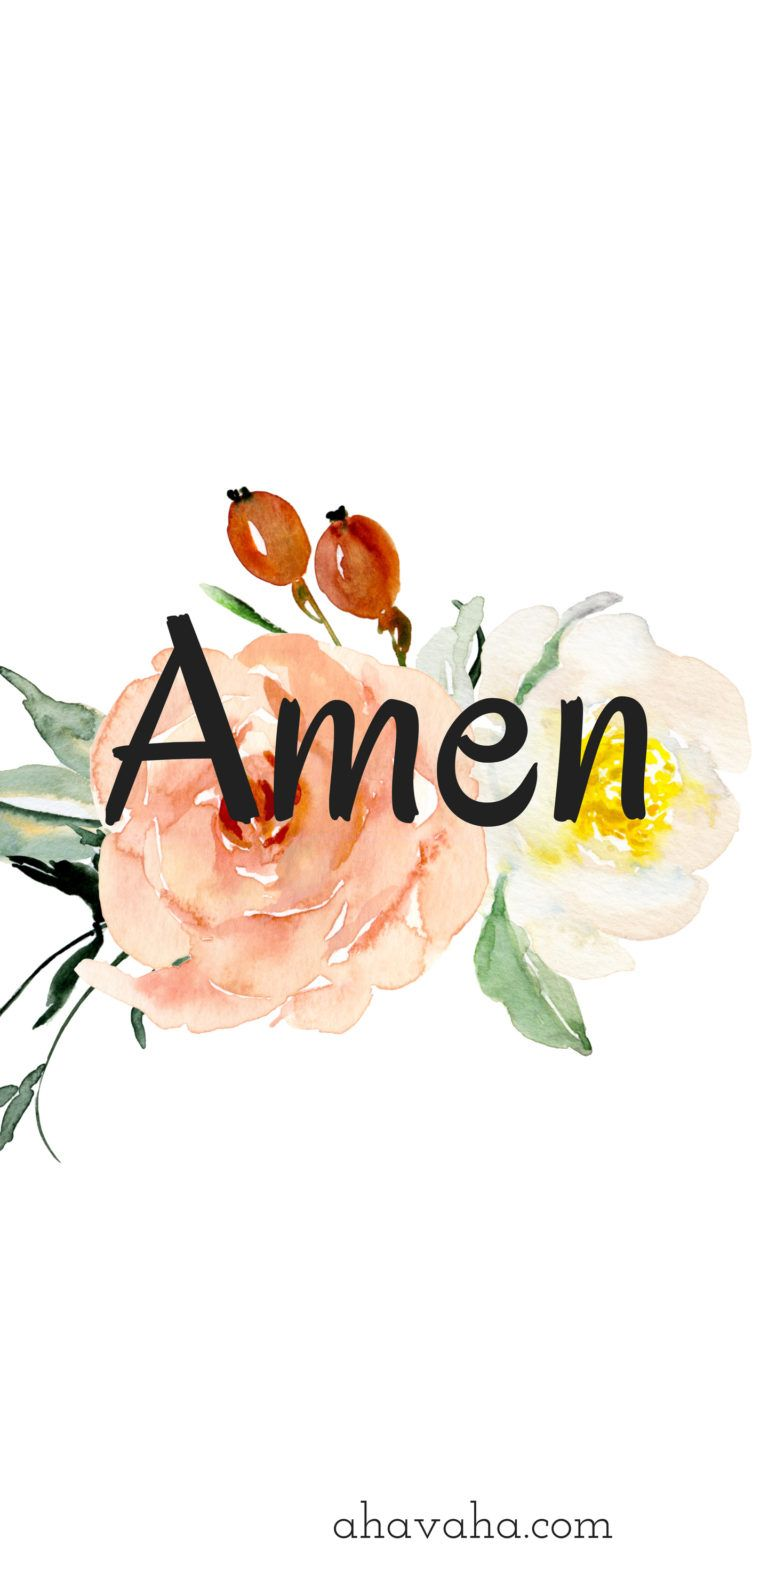 Amen Themed Floral Free Christian Wallpaper And Screensaver Mobile